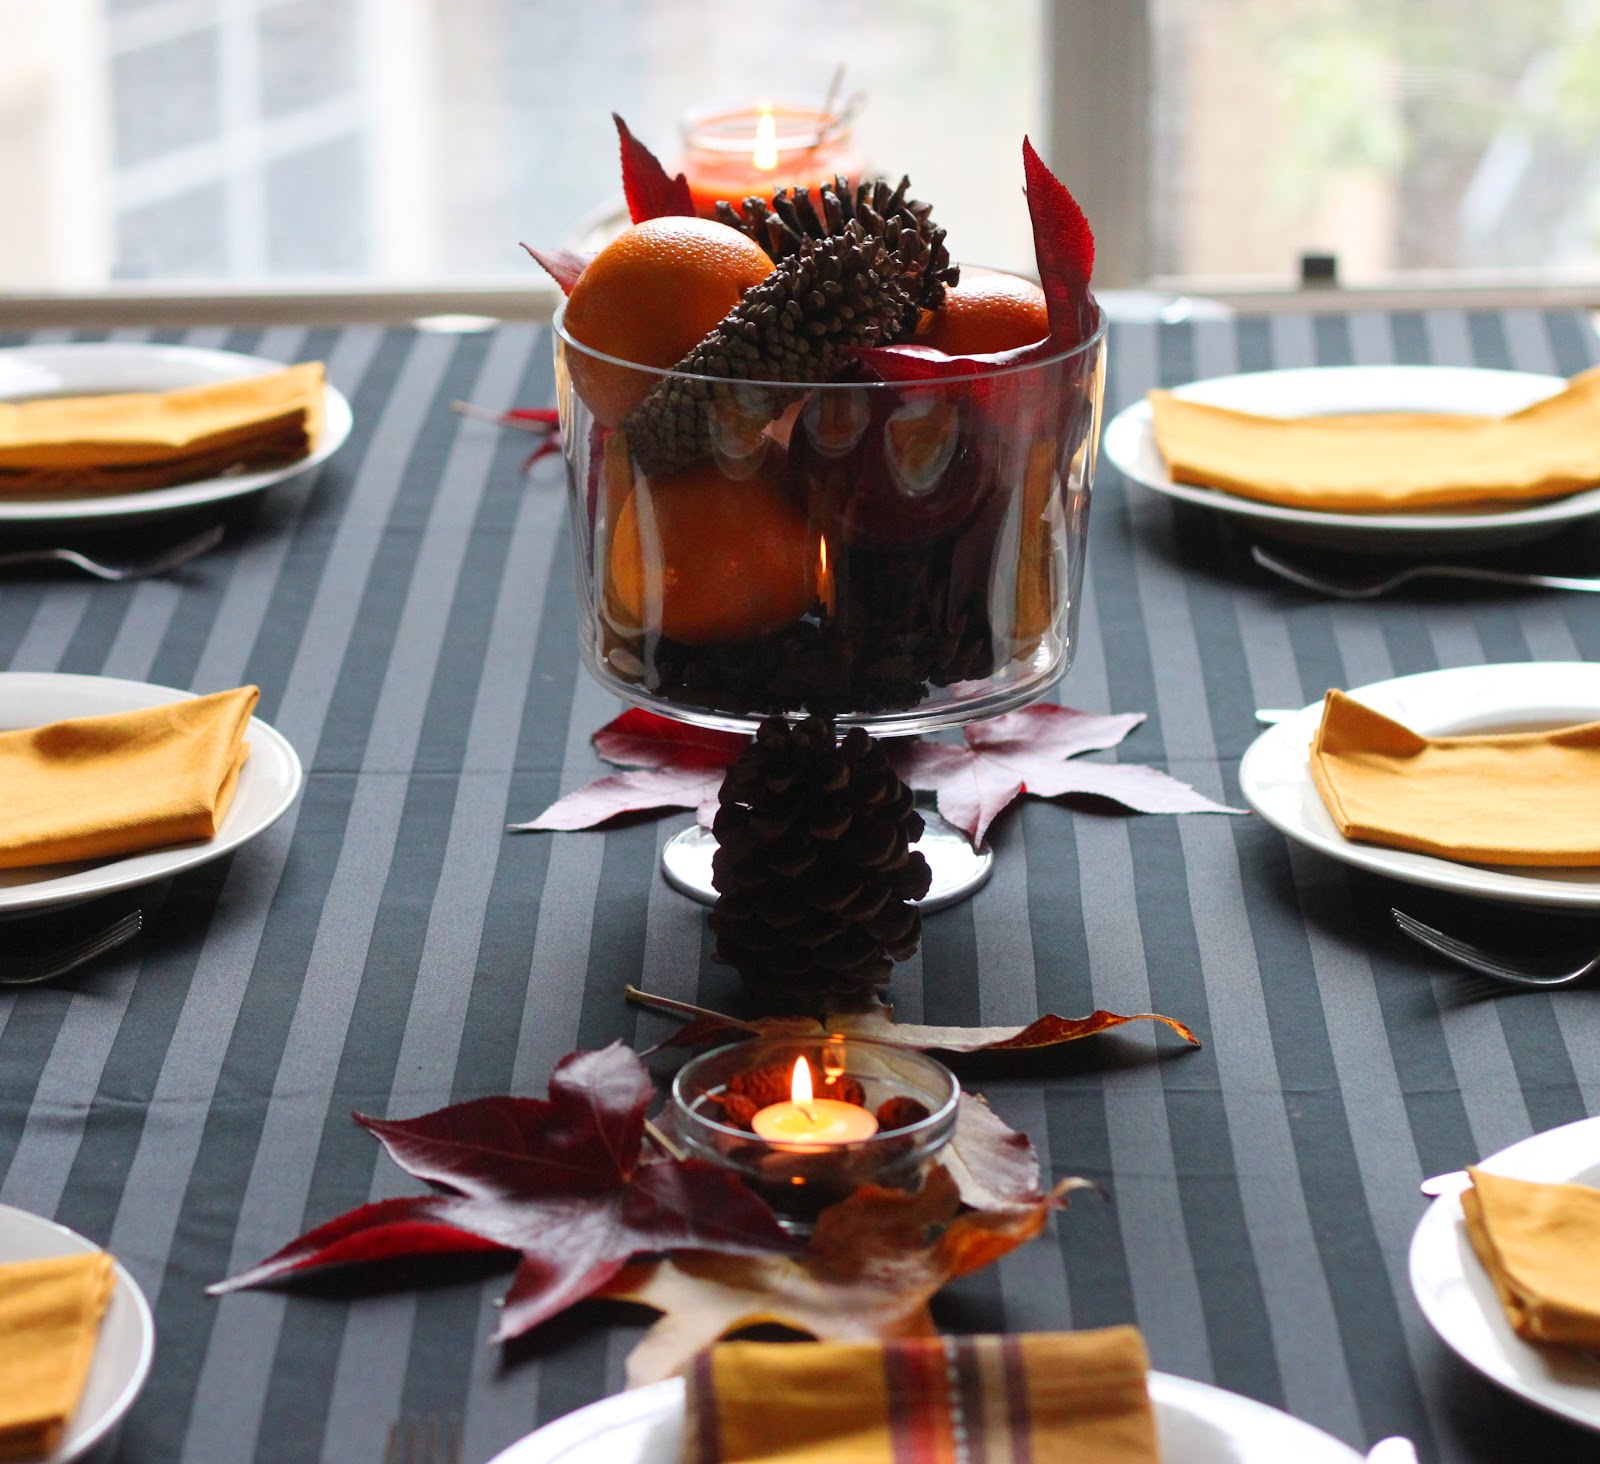 Thanksgiving Decoration Ideas For Table: The Cilantropist: Honey Cornbread Muffins, And My